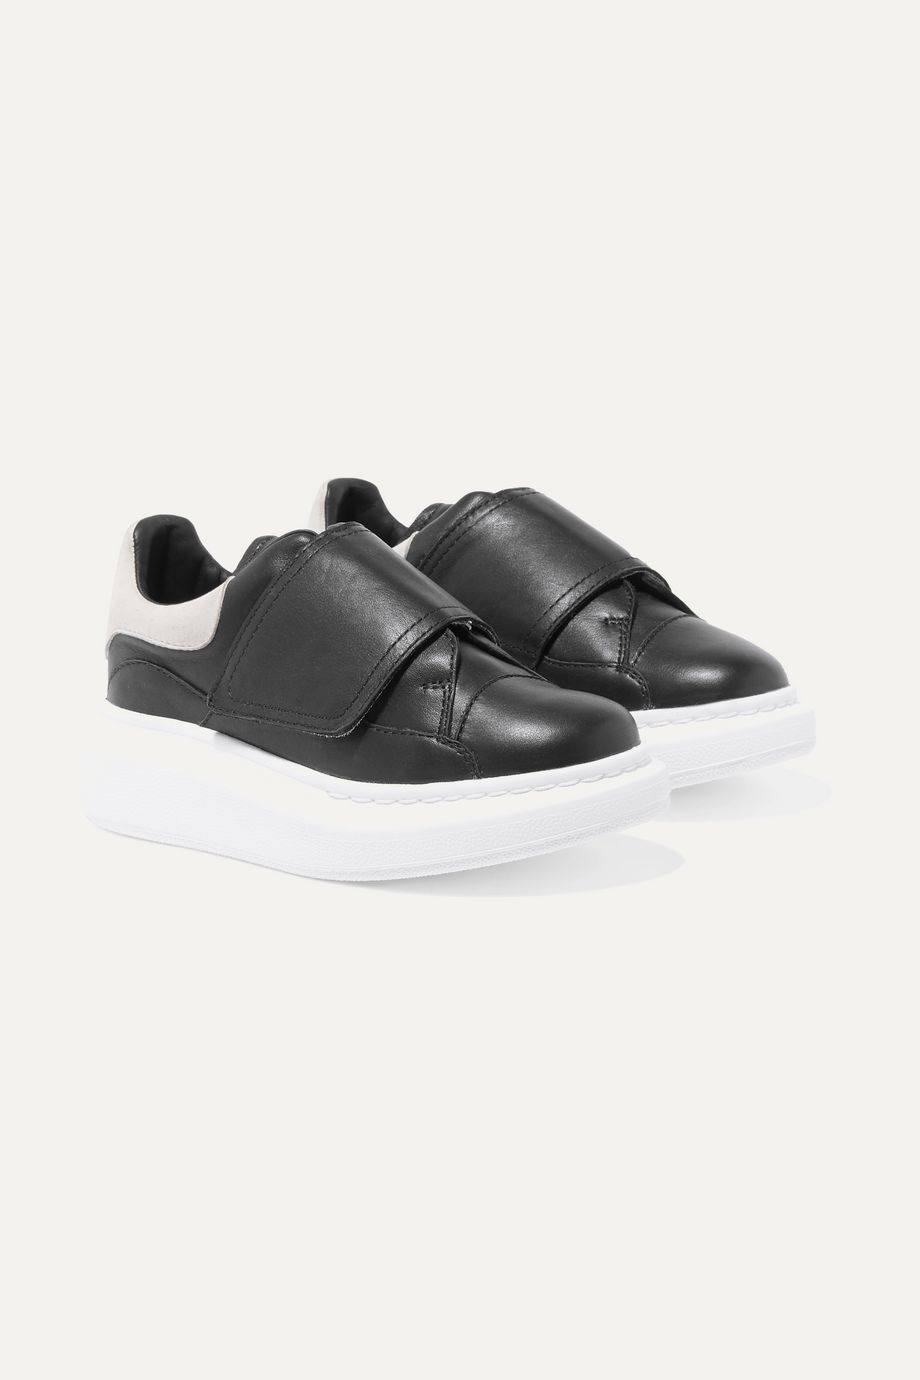 Alexander McQueen Kids Suede-trimmed leather exaggerated sole sneakers